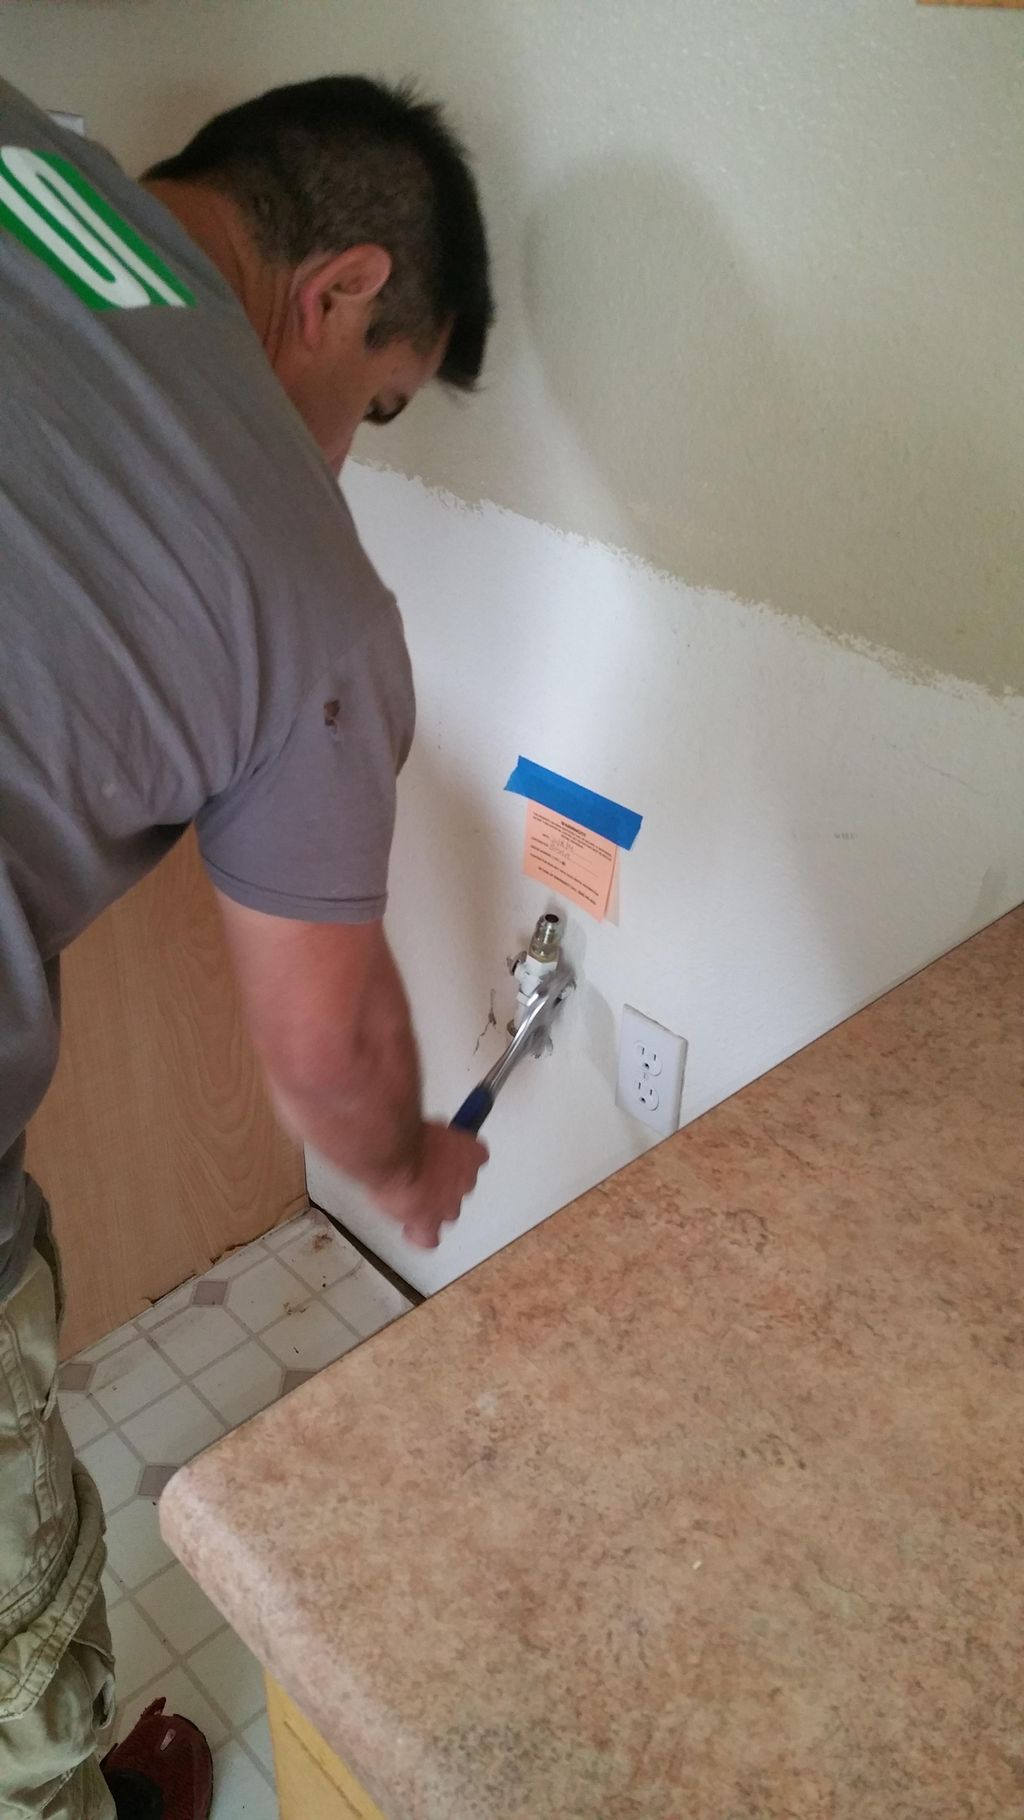 Specialized Plumbing & Heating